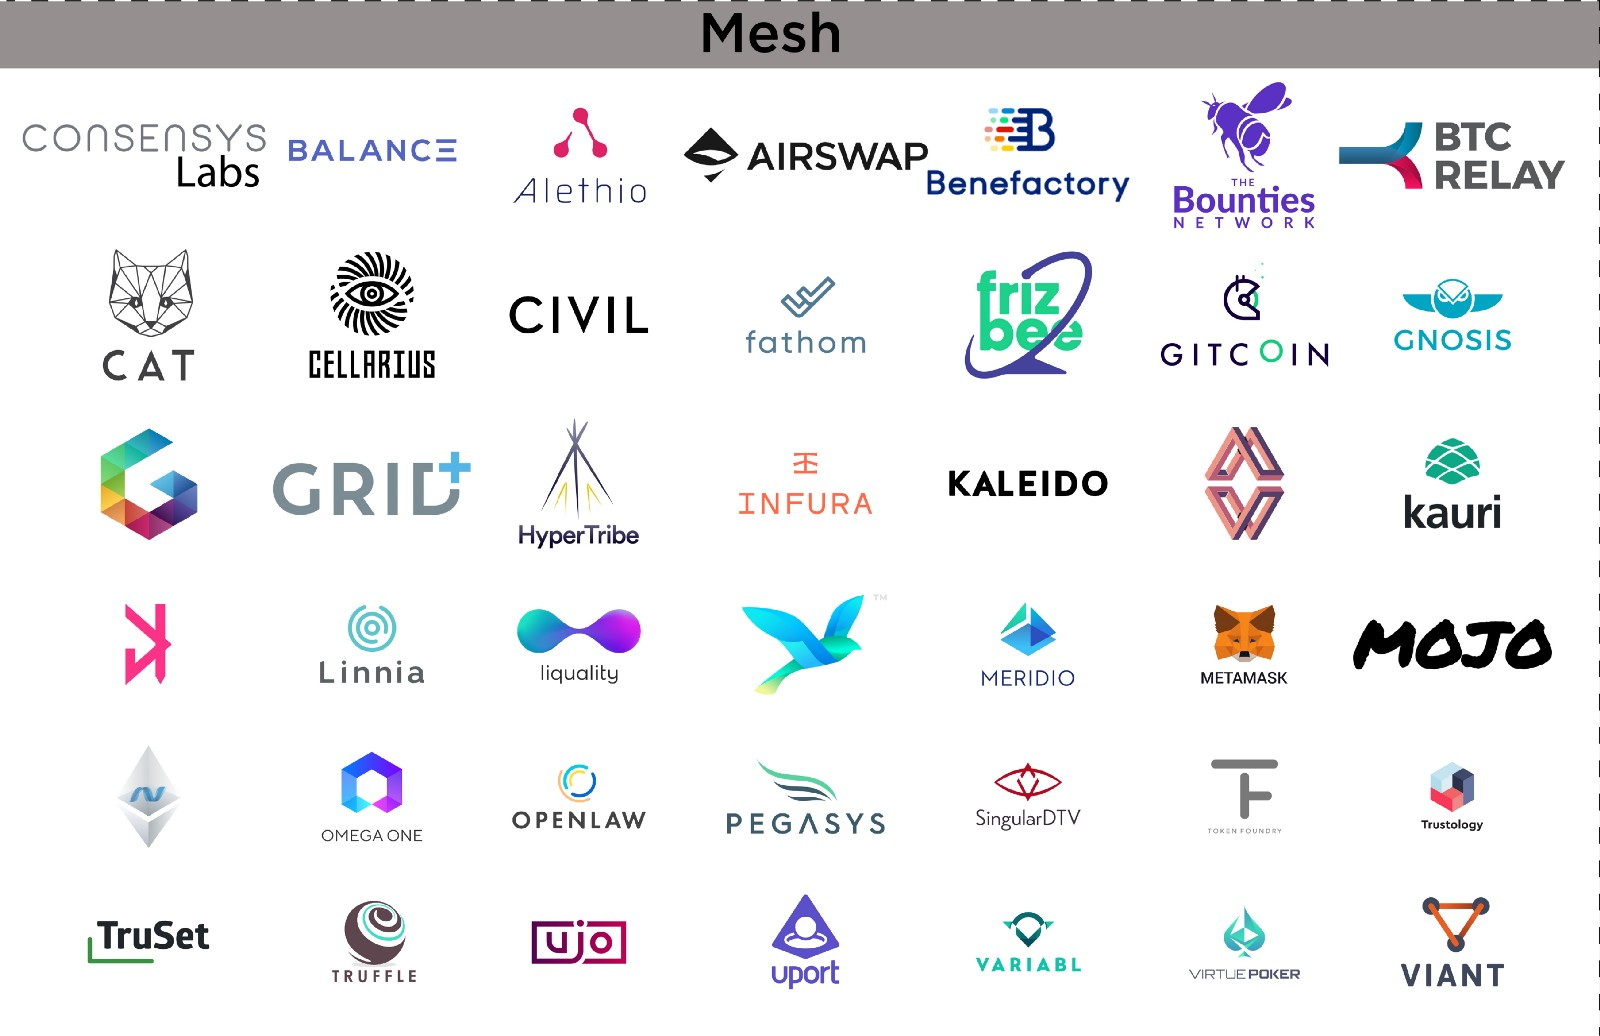 ConsenSys: Understanding one of the most important firms in